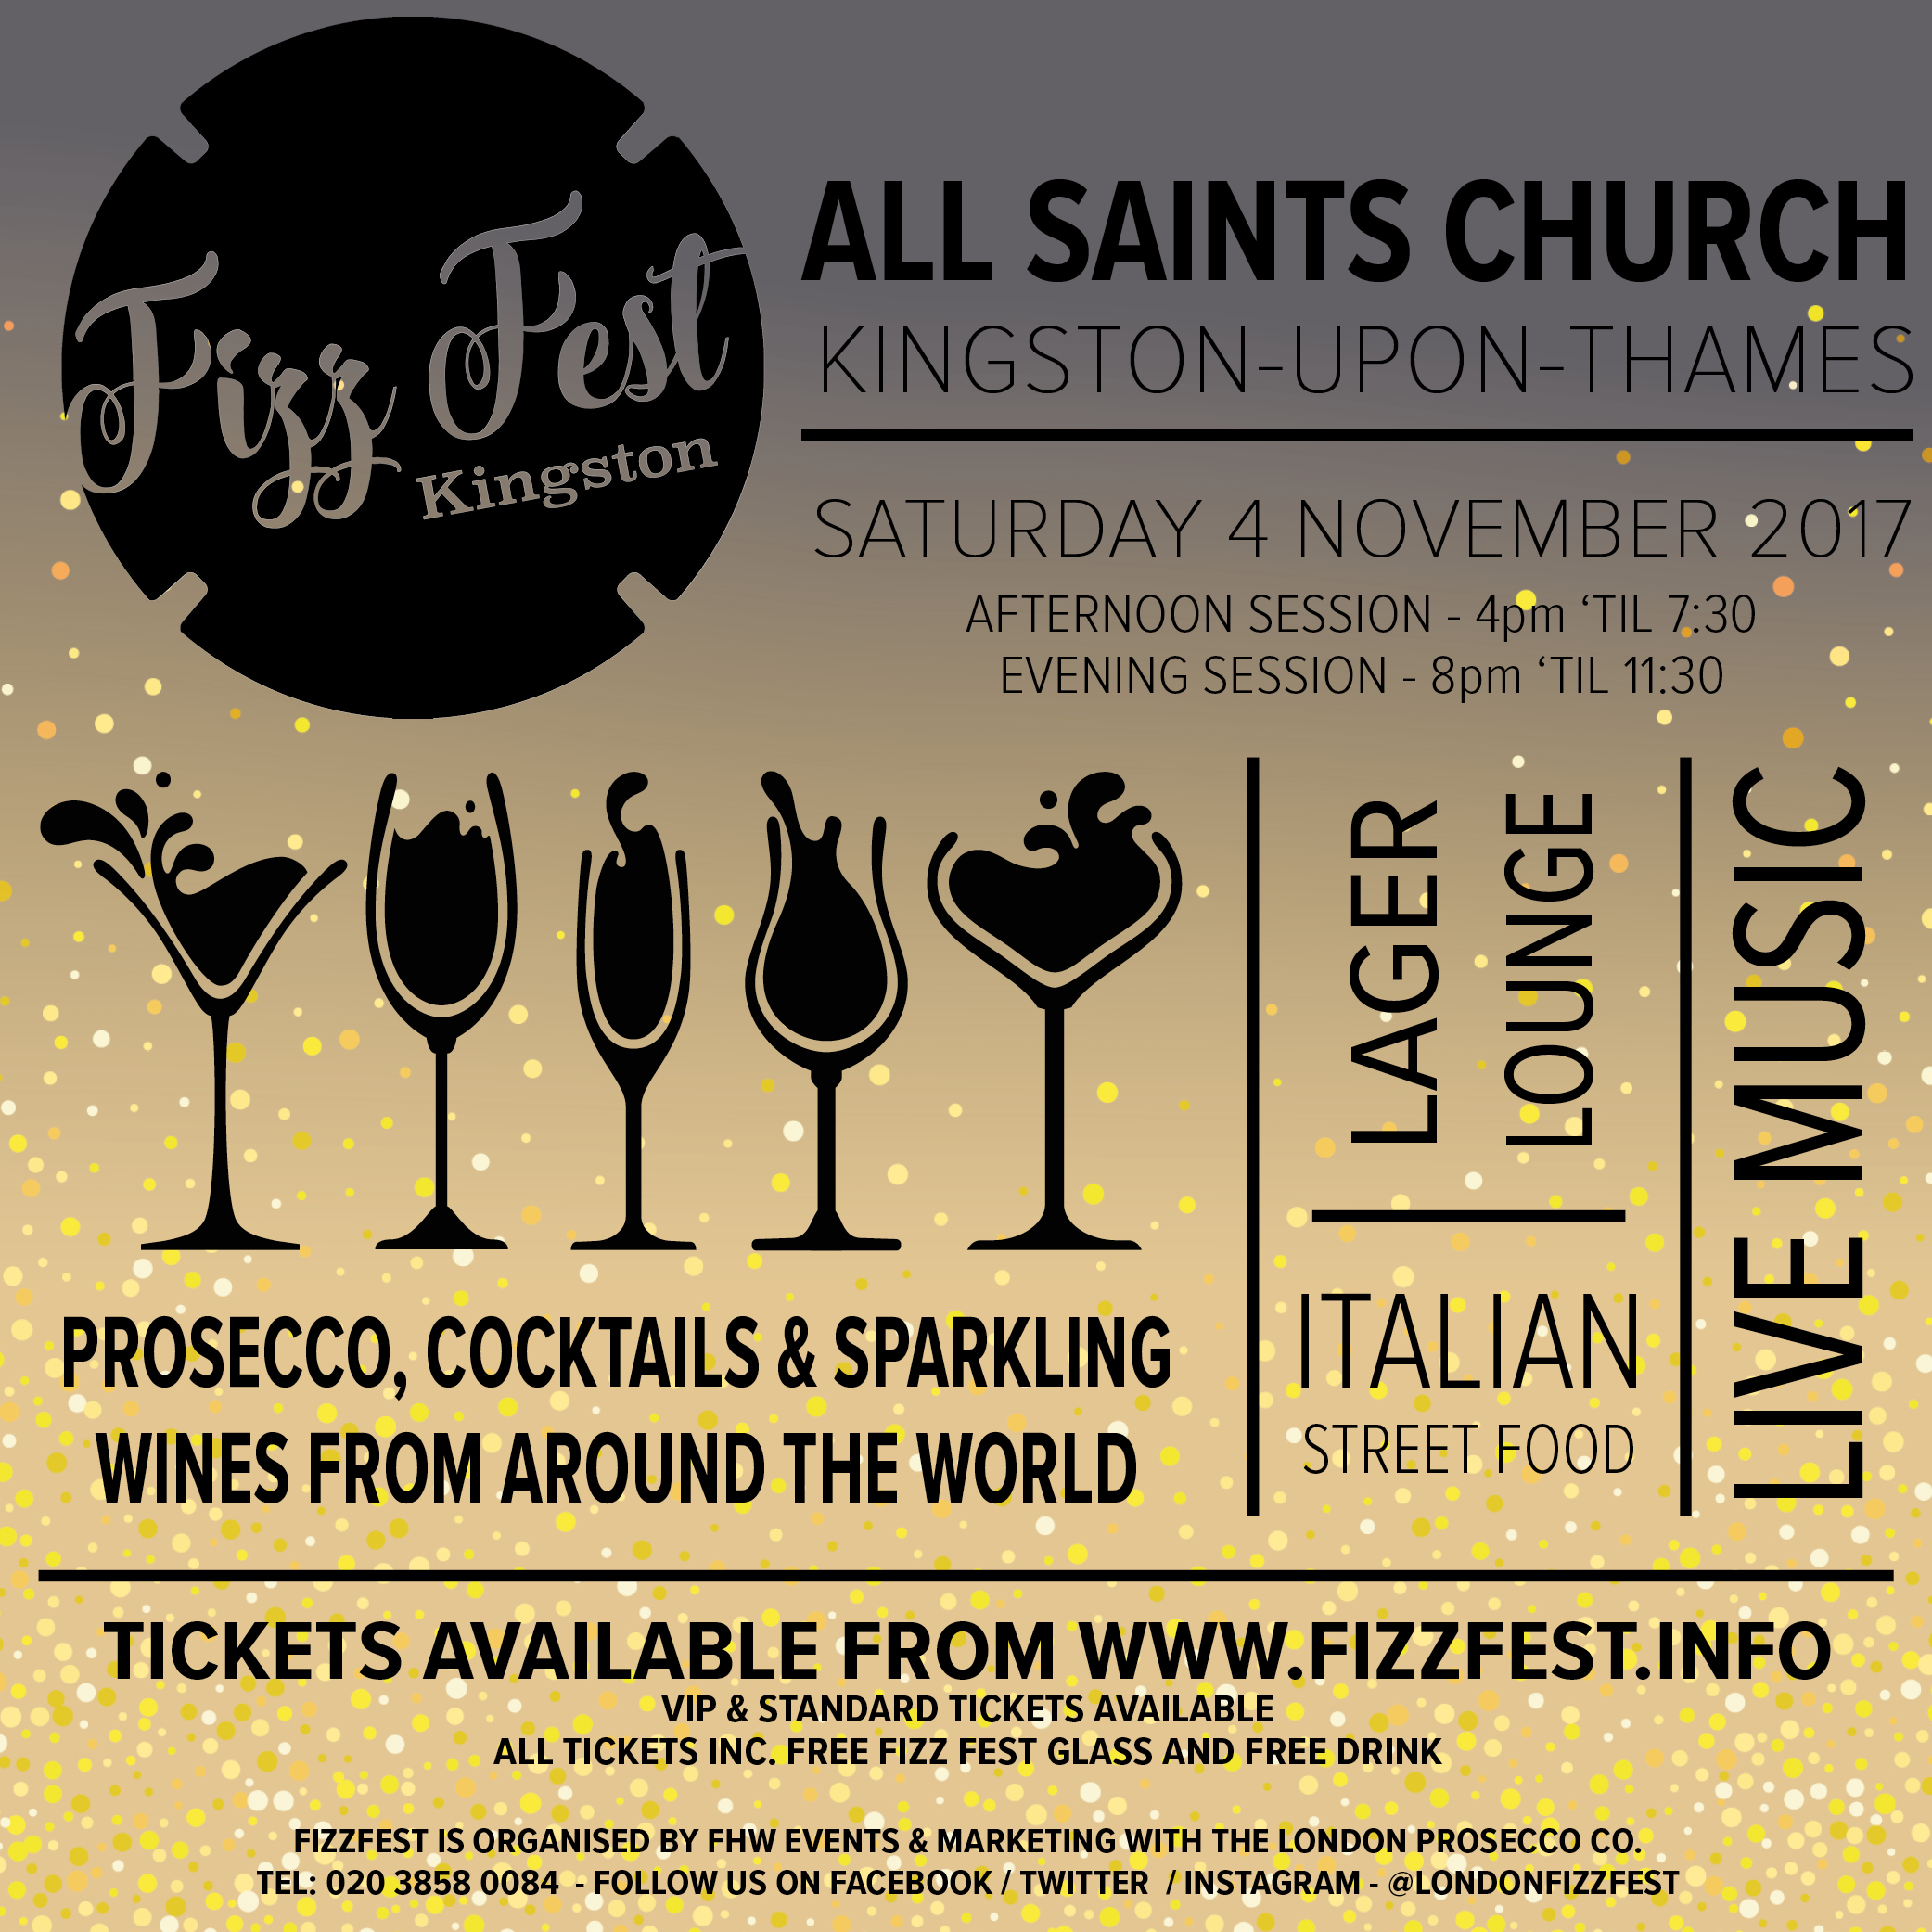 Fizz Fest Kingston